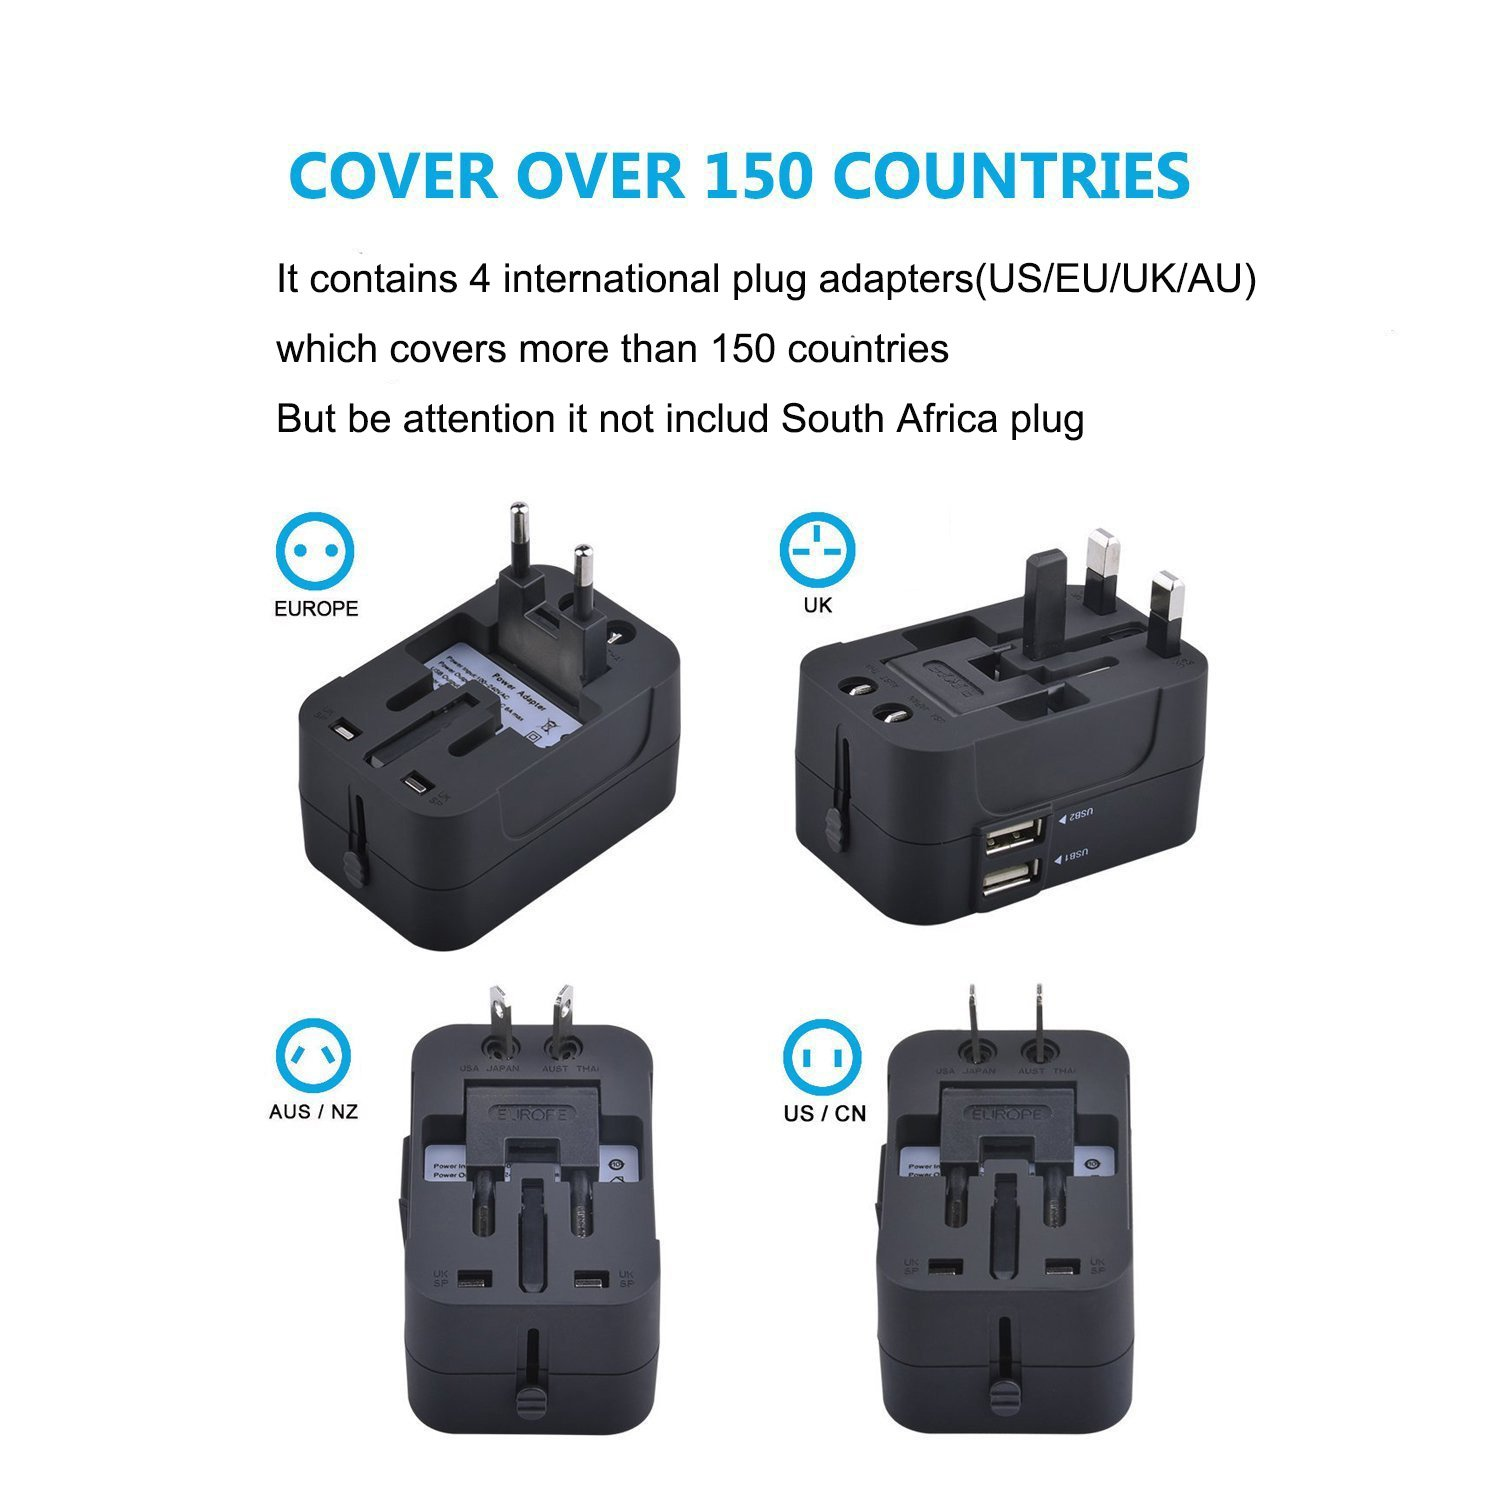 Travel Converter Adapterlaeker Universal All In One Australian Dual 3 Pin Socketoutlet Construction Worldwide Adapter Wall Charger Ac Power Plug Usb Charging Ports Usa Eu